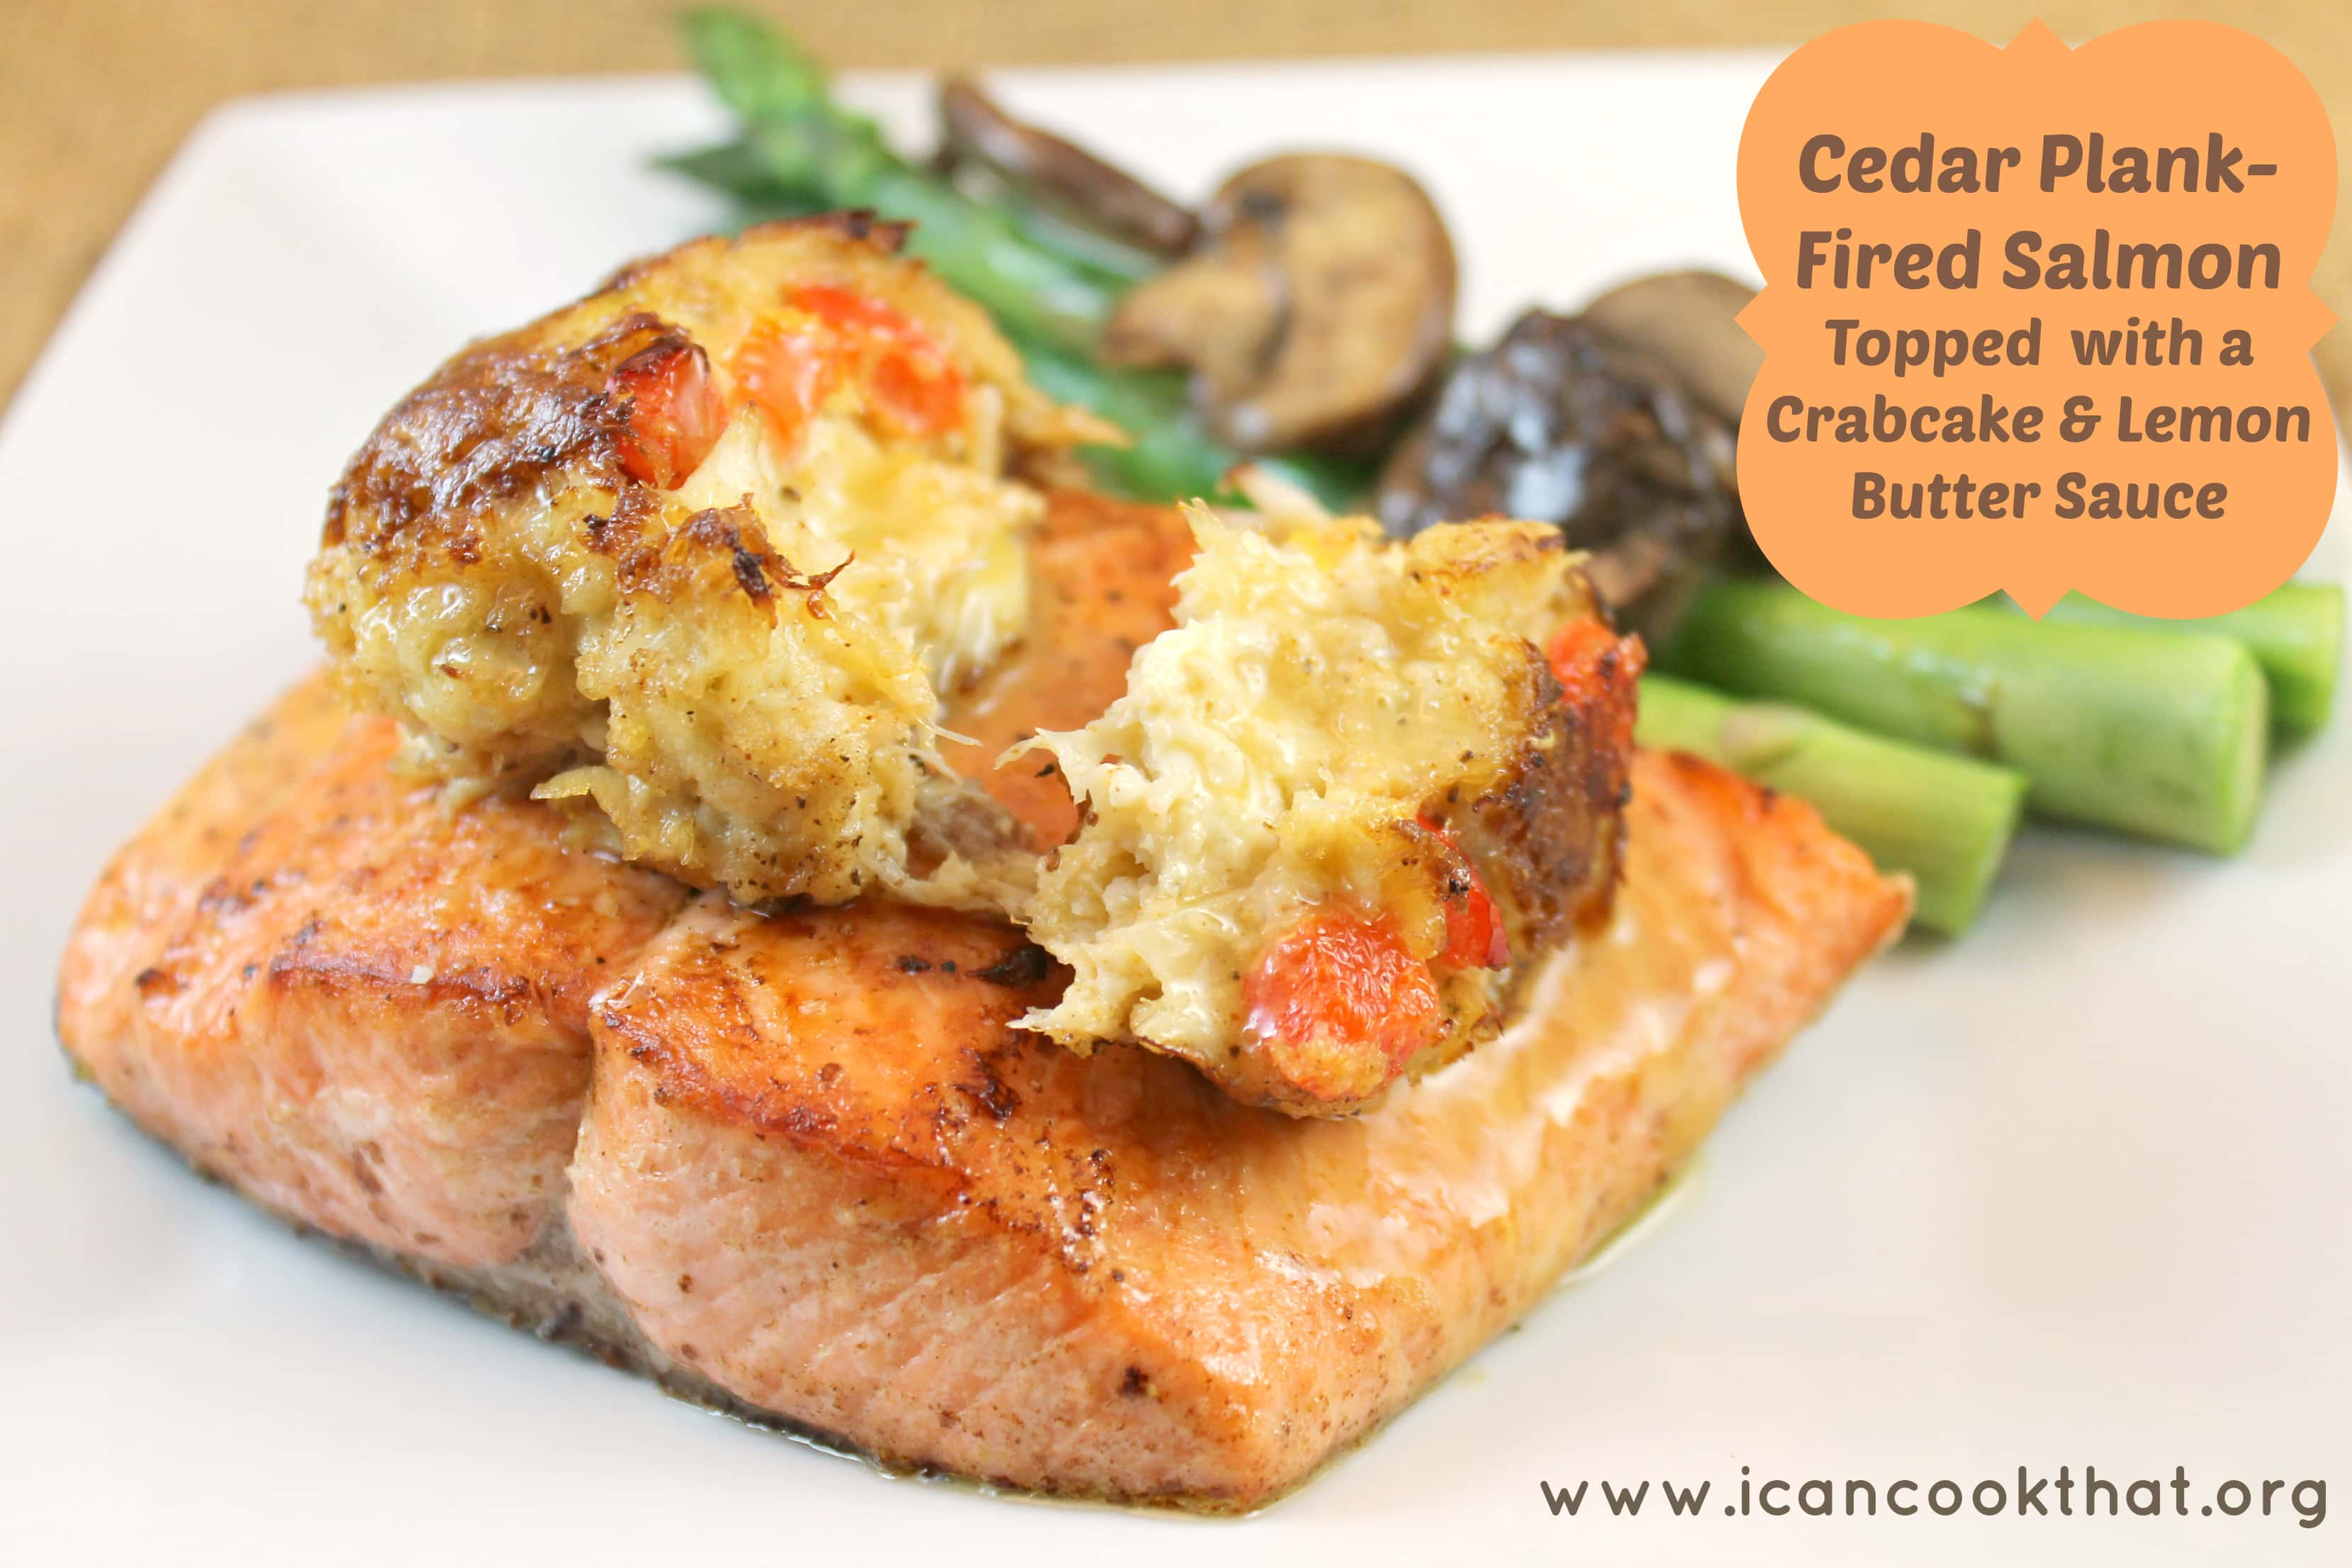 Cedar Plank Fired Salmon Topped W A Crabcake Lemon Butter Sauce